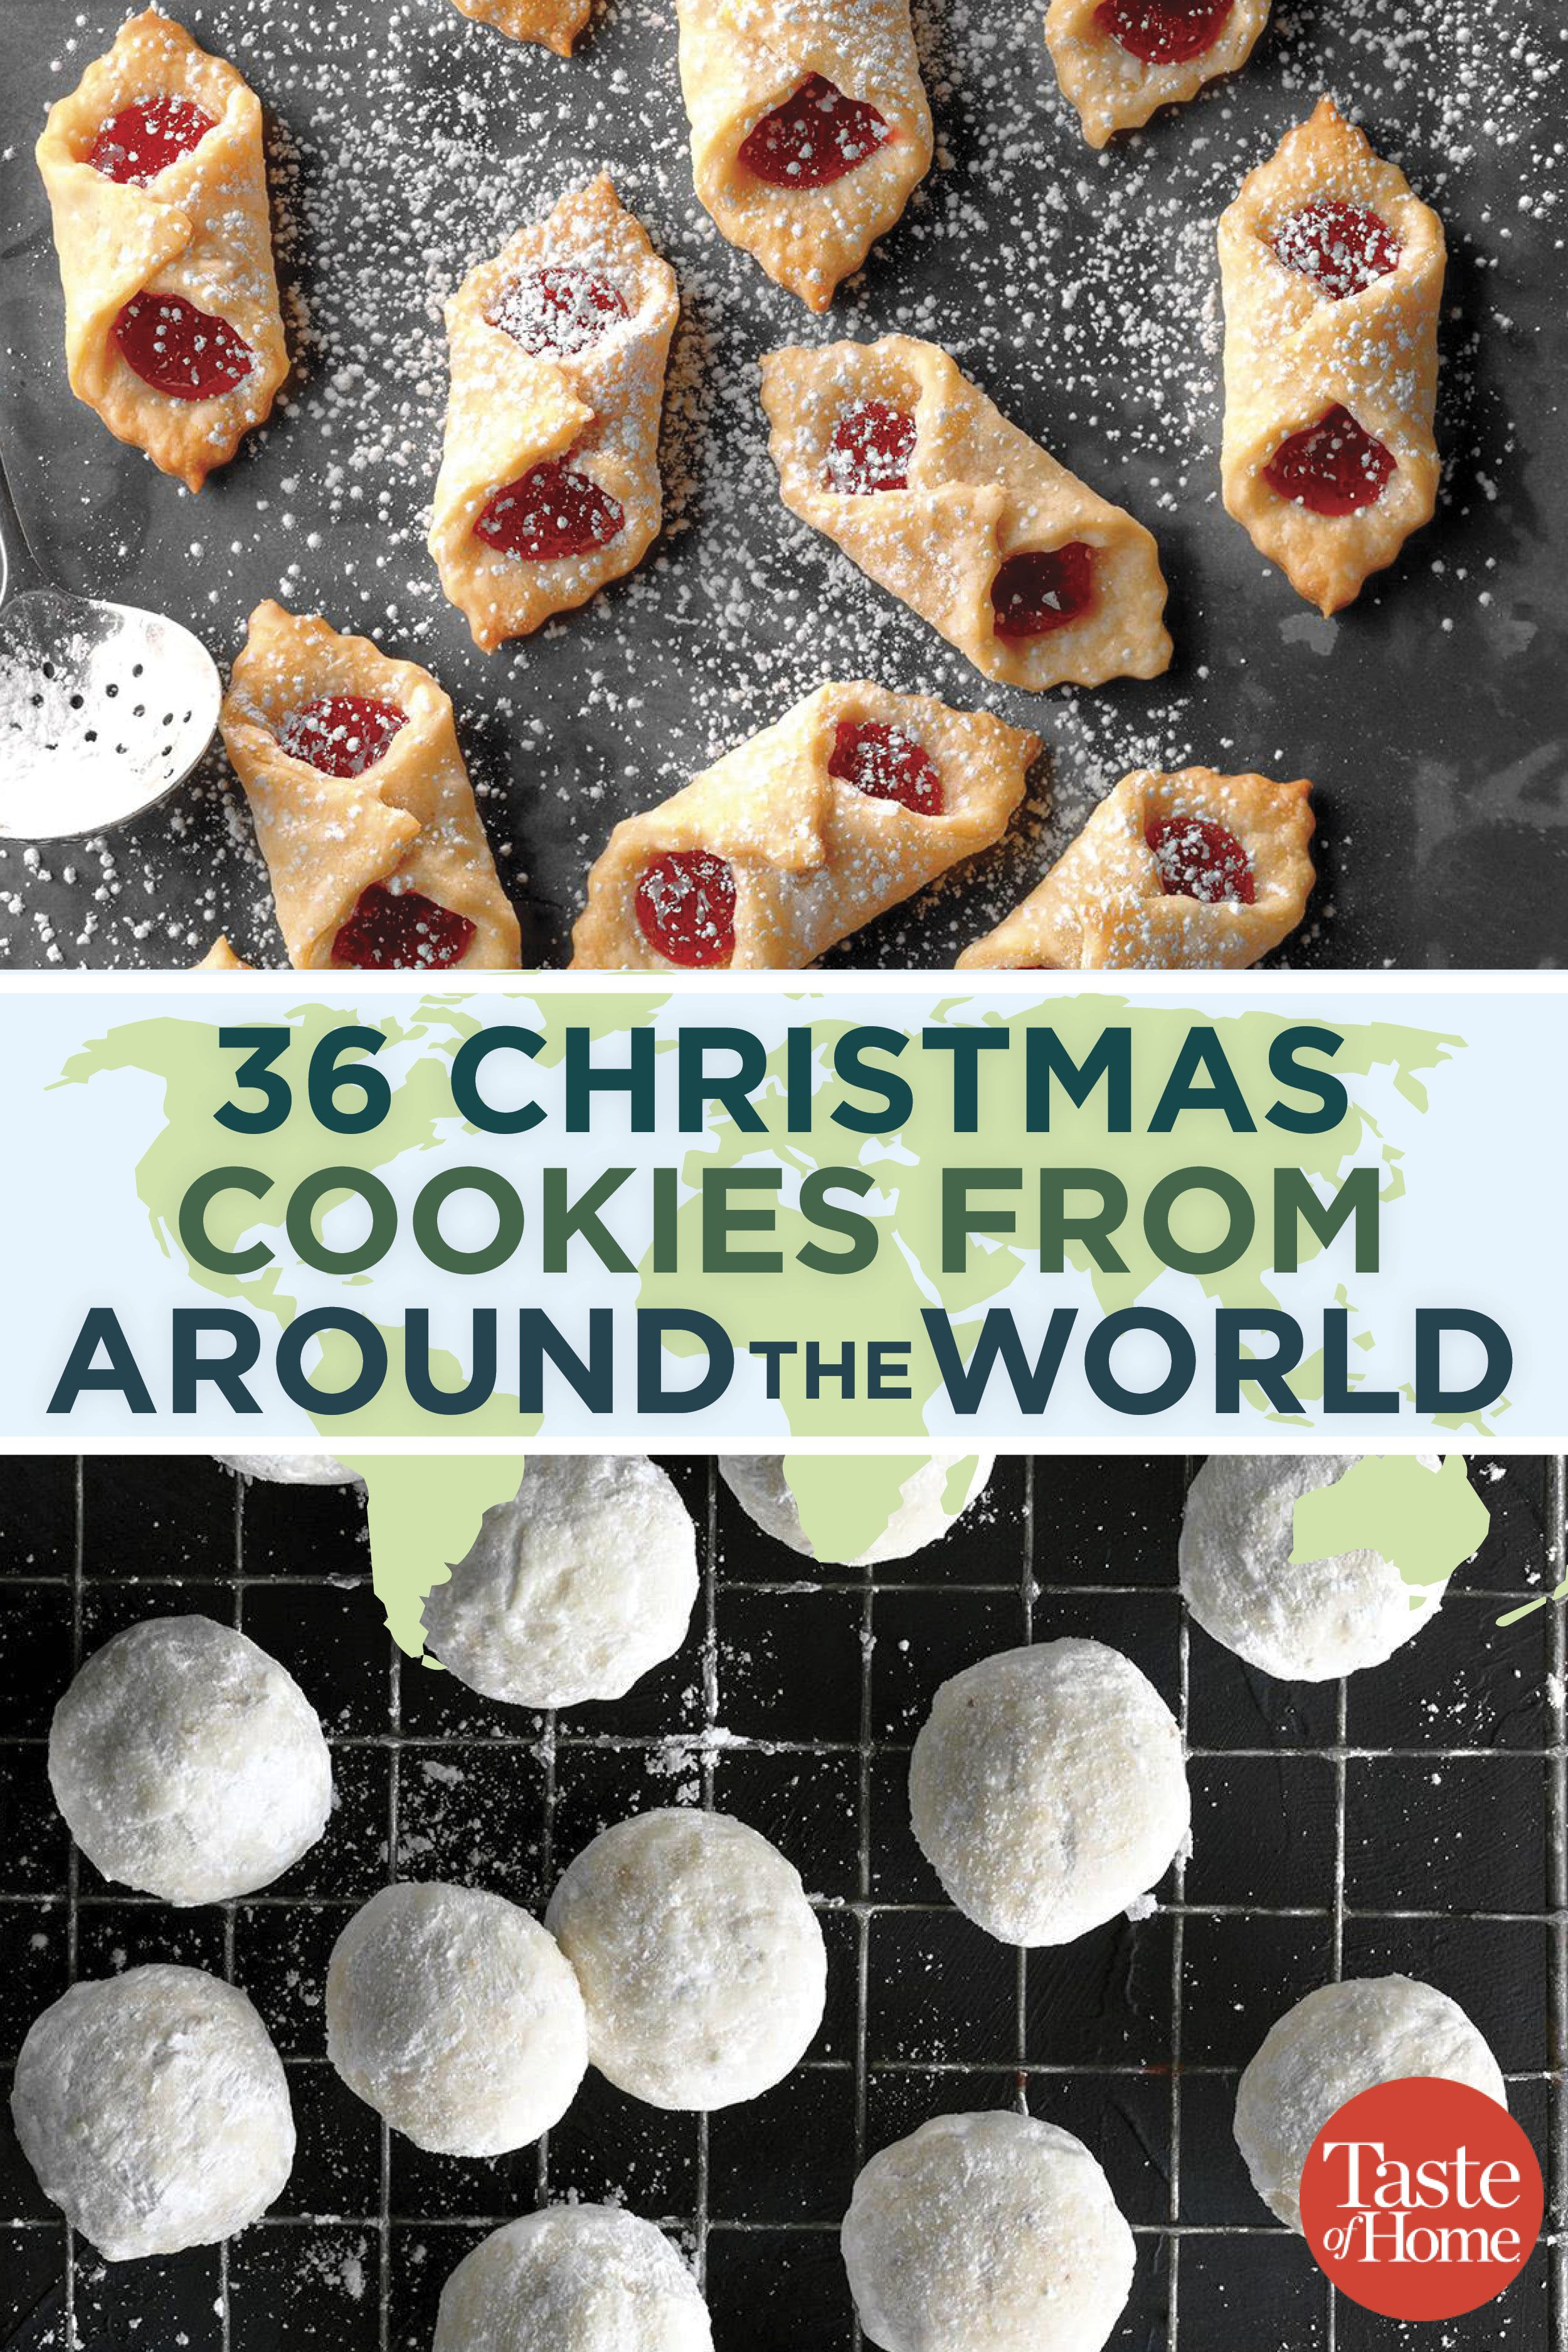 40 Christmas Cookies From Around The World In 2020 Cookies Recipes Christmas Christmas Cooking Traditional Christmas Cookies